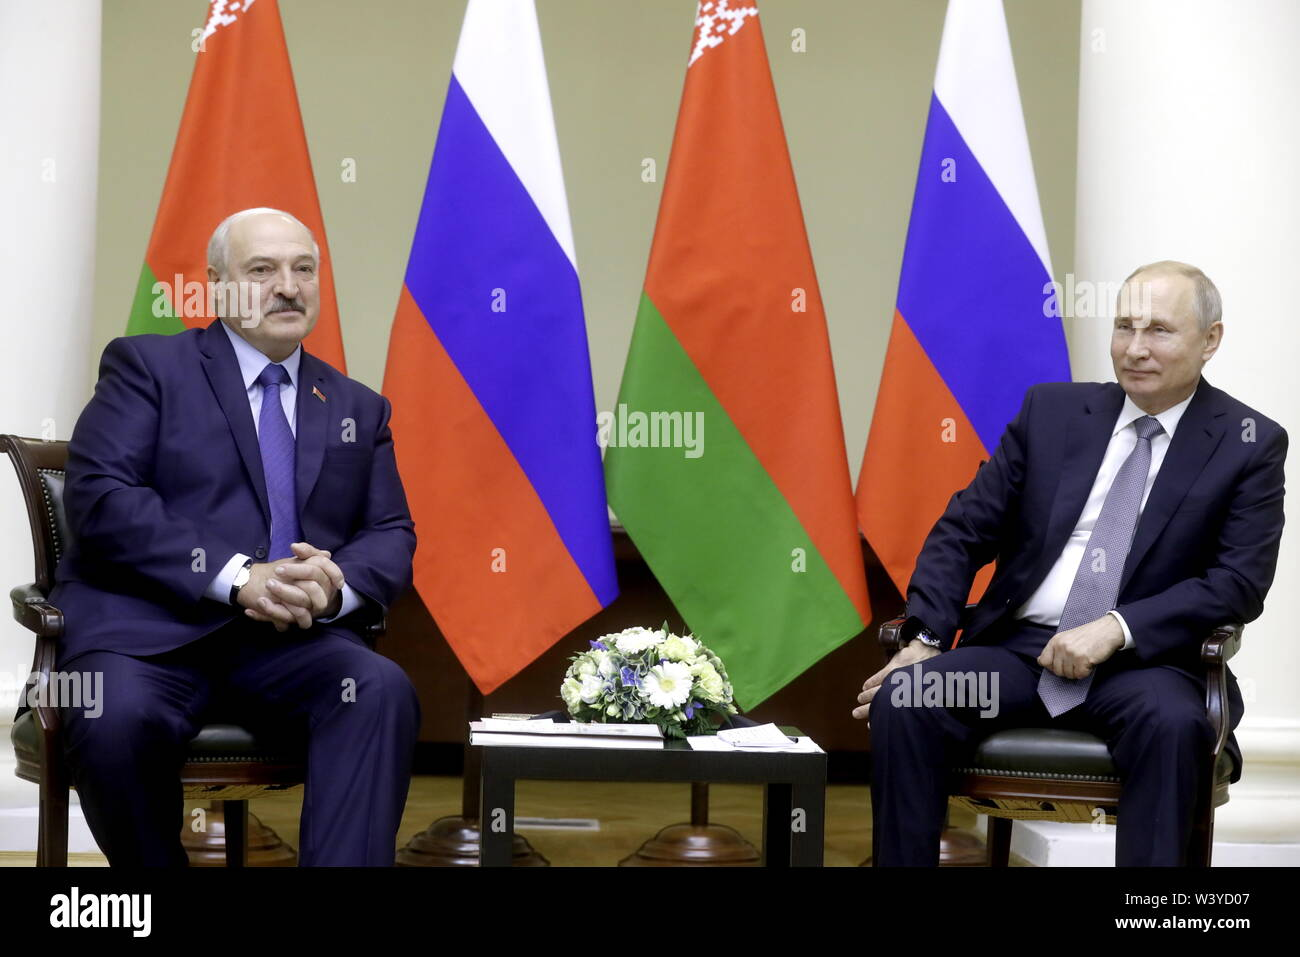 St Petersburg, Russia. 18th July, 2019. ST PETERSBURG, RUSSIA - JULY 18, 2019: Belarus' President Alexander Lukashenko (L) and Russia's President Vladimir Putin during a meeting at the Tauride Palace. Mikhail Metzel/TASS Credit: ITAR-TASS News Agency/Alamy Live News - Stock Image